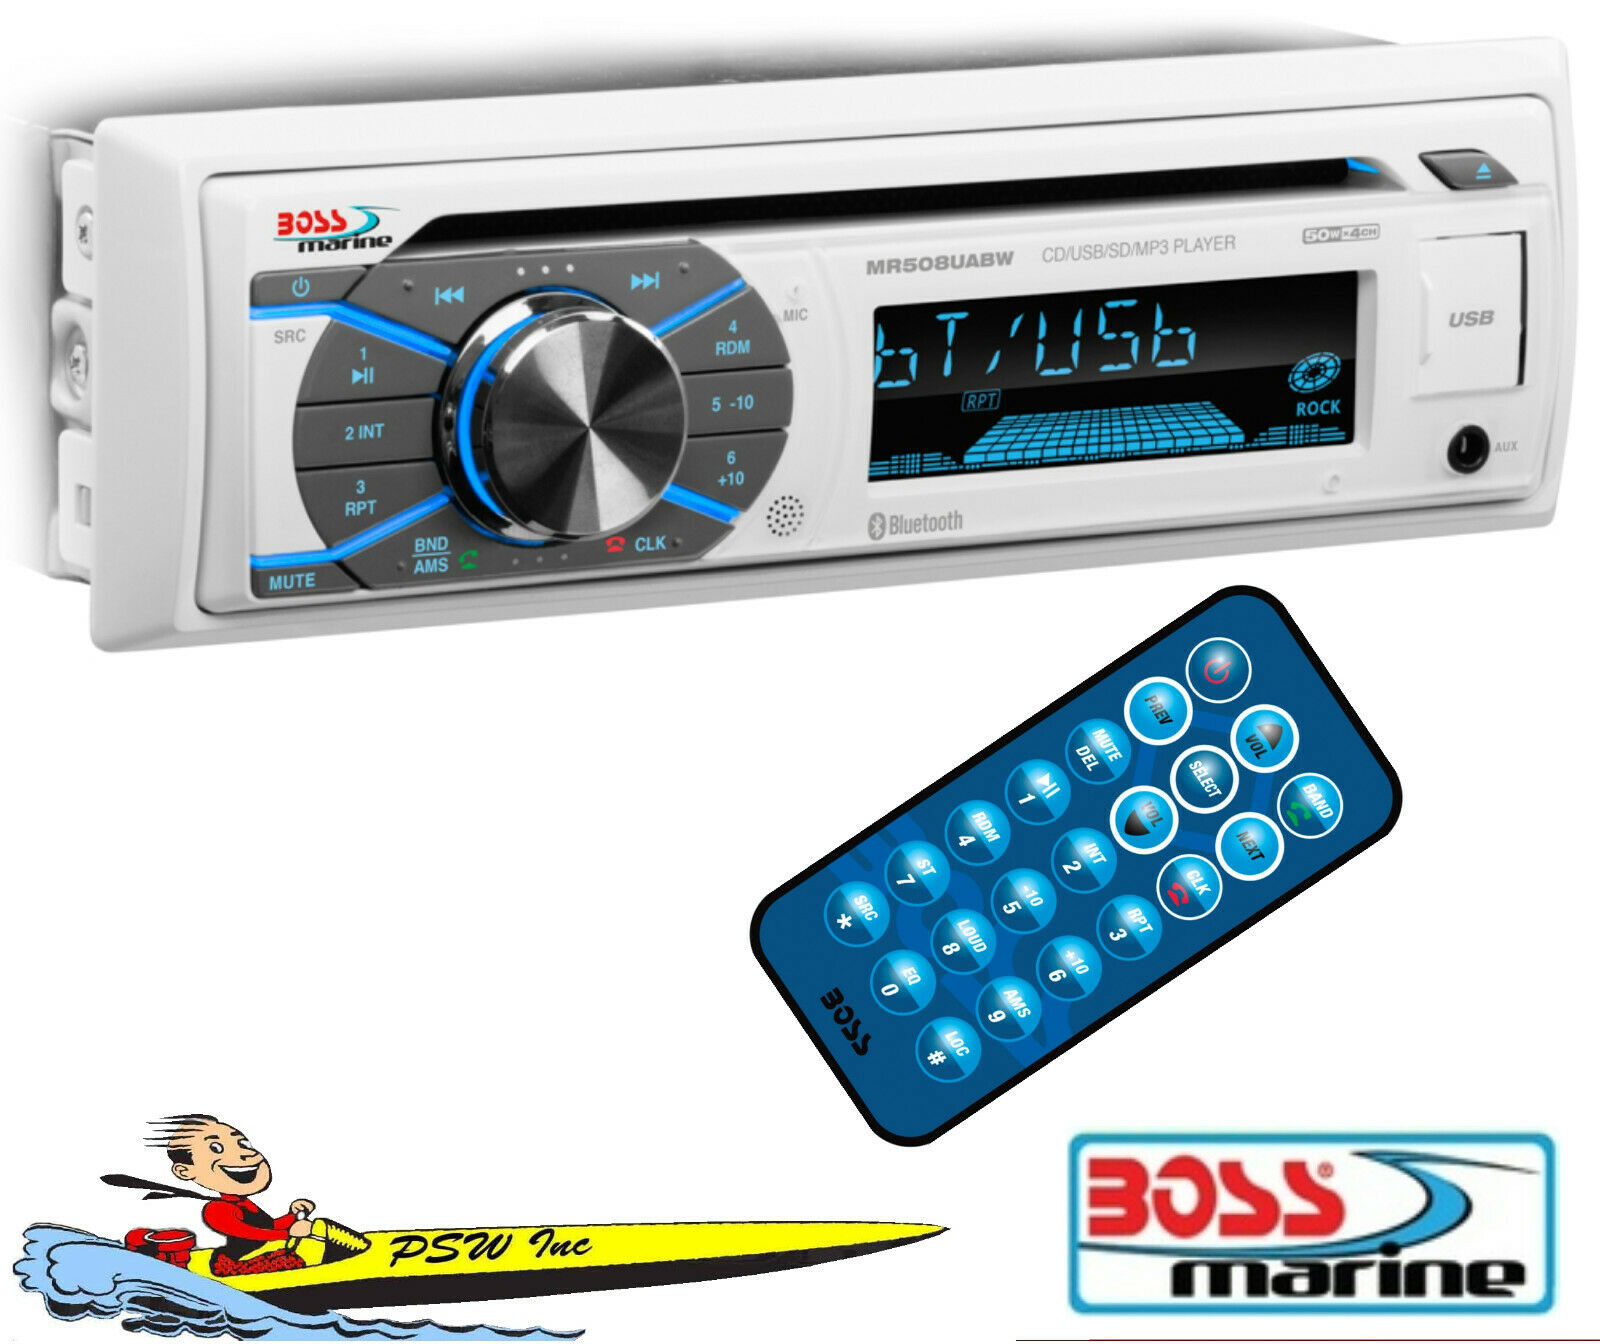 MR508UABS BOSS MARINE Single-DIN CD Player w-Bluetooth Streaming From Cell boss cell from marine mr508uabs player streaming